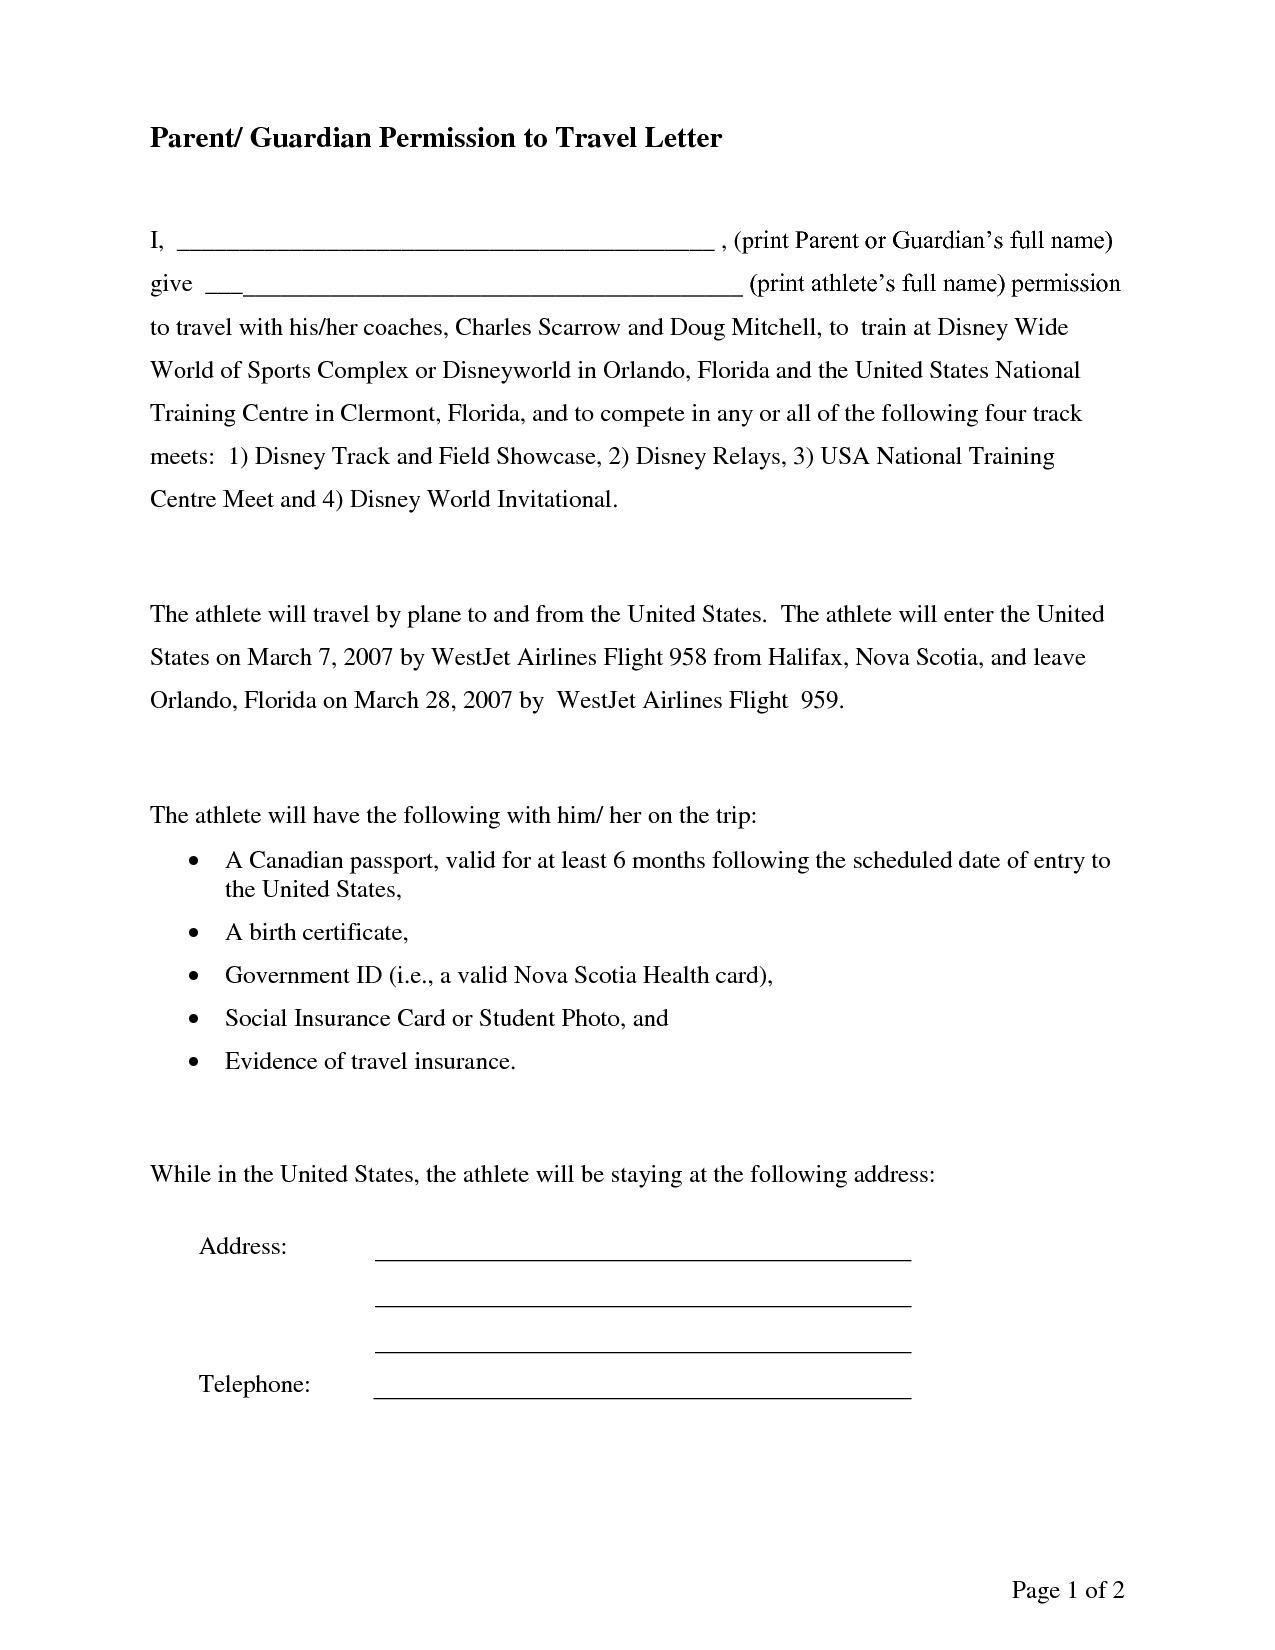 Parent Permission Letter Template - Leave Application for Sisters Marriage Sample Permission Letter